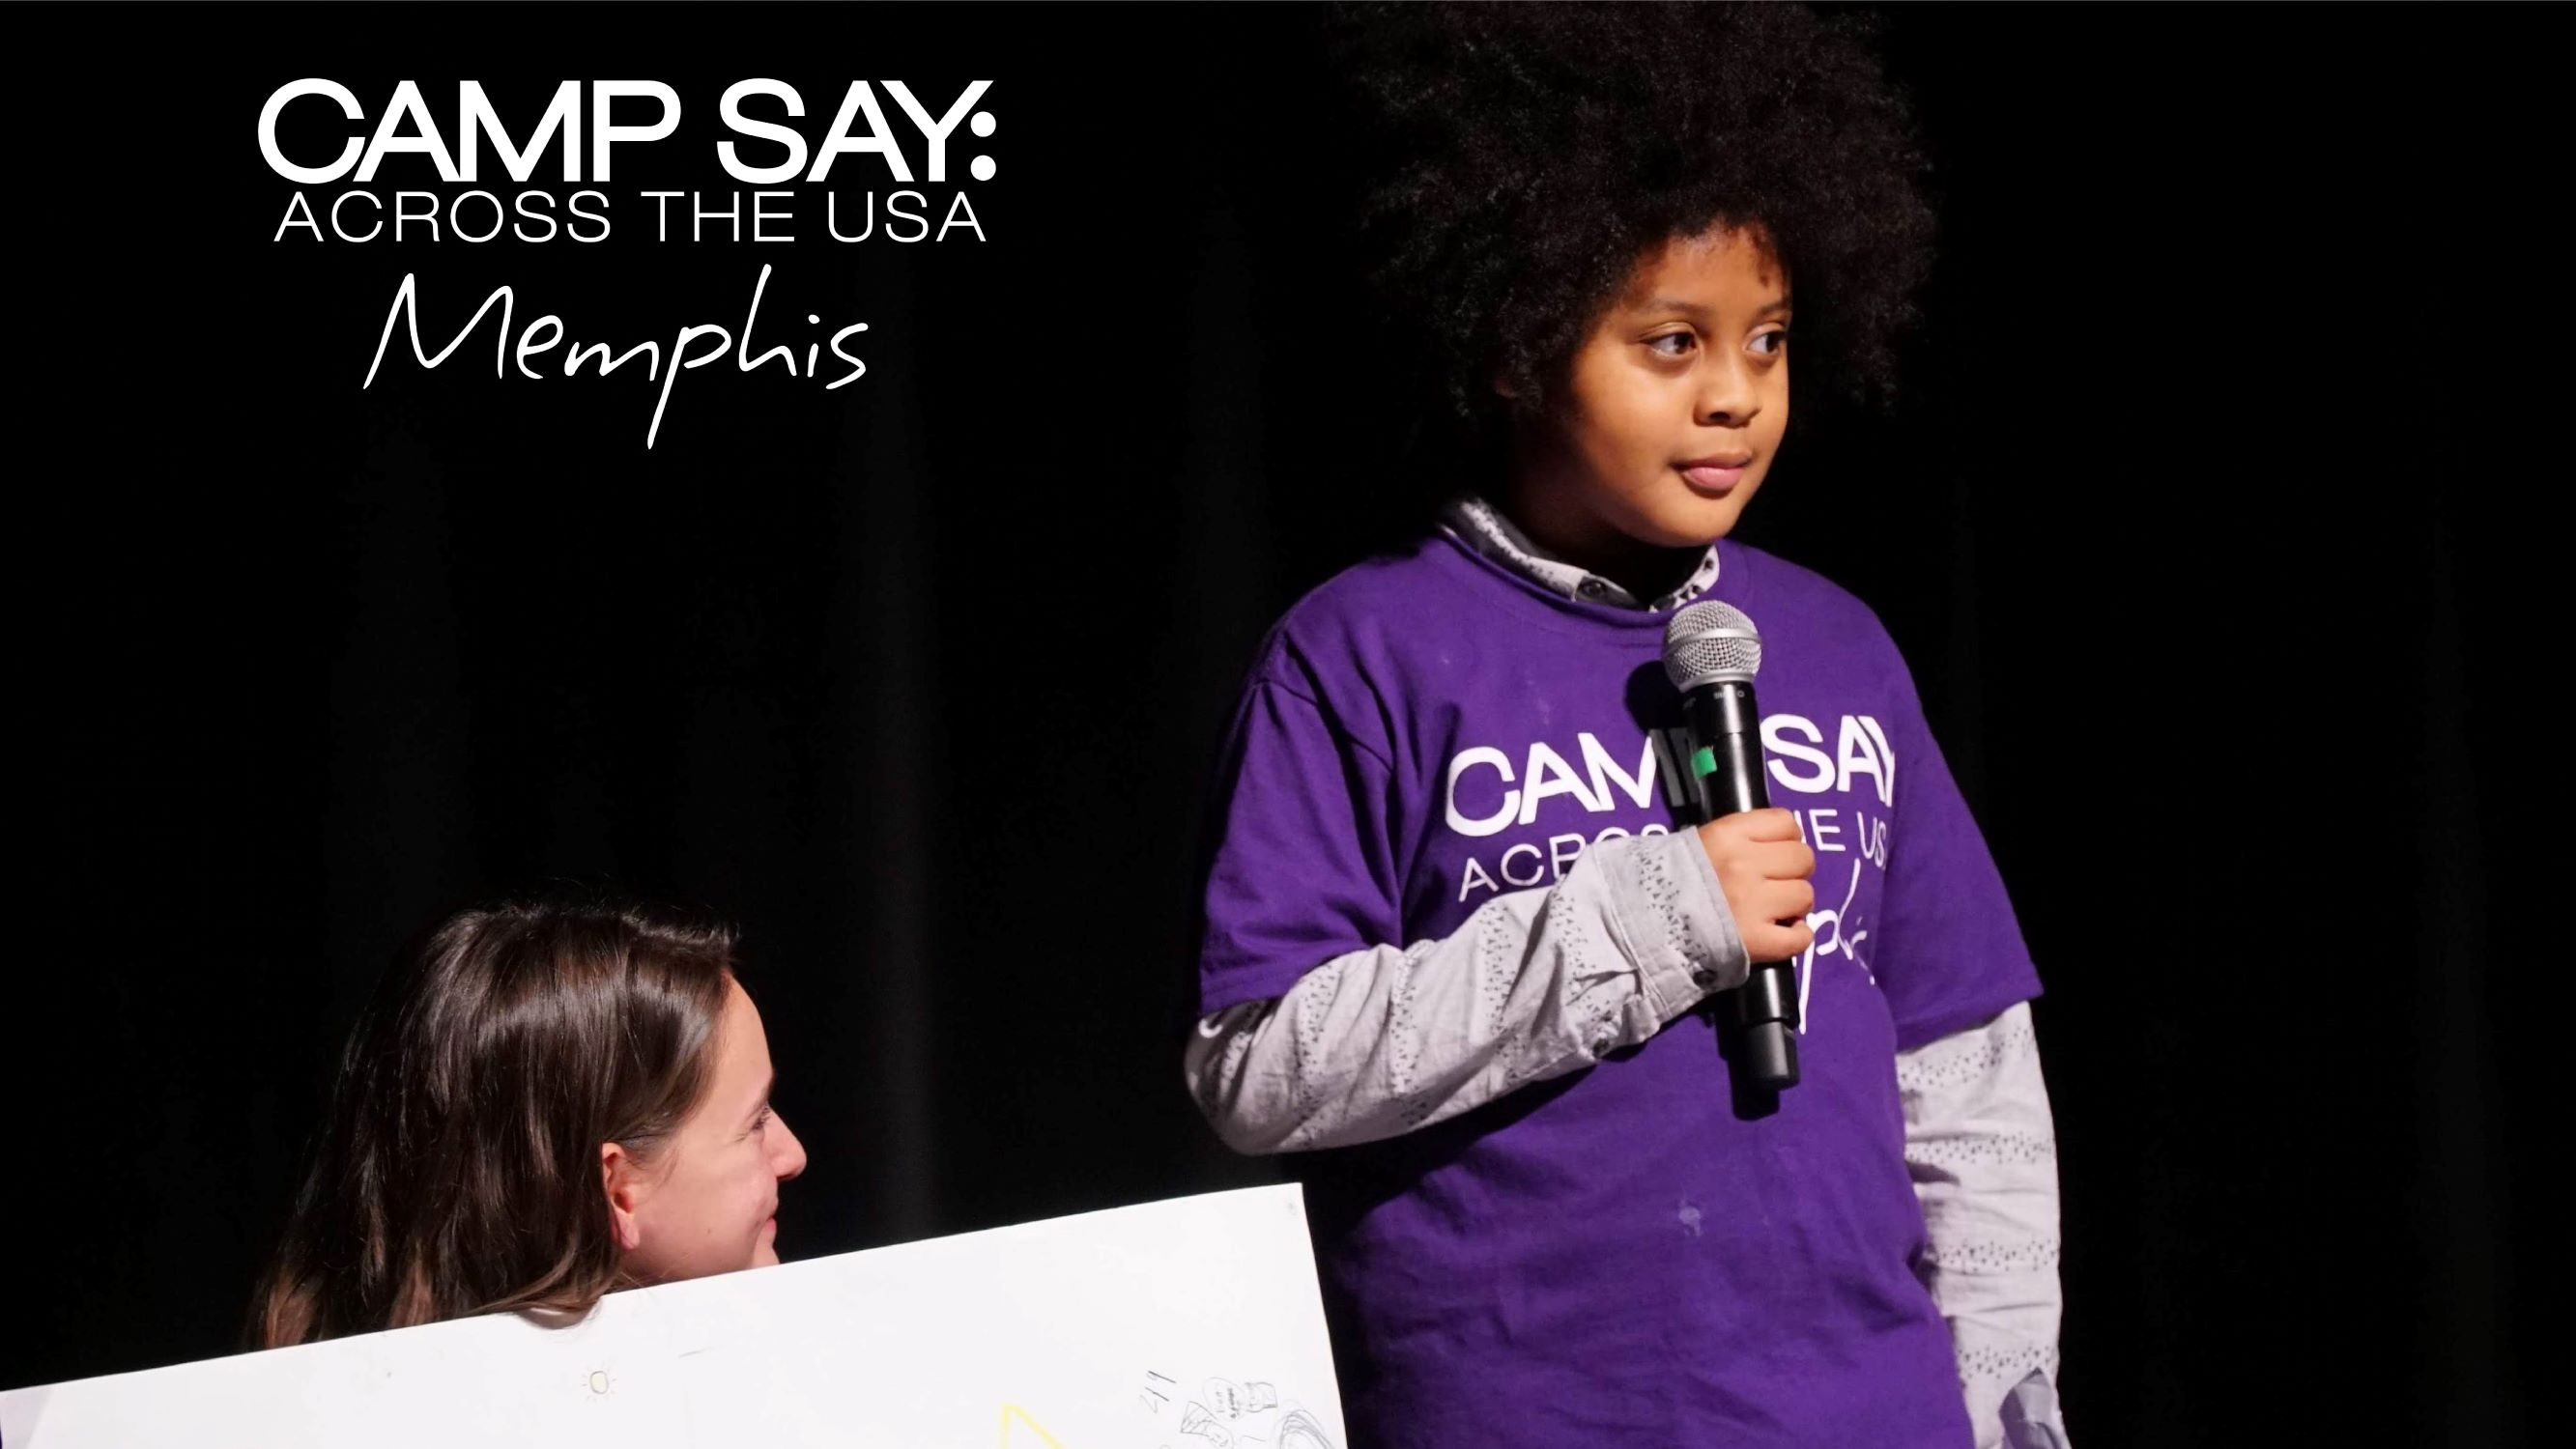 Camp SAY Across the USA: Memphis